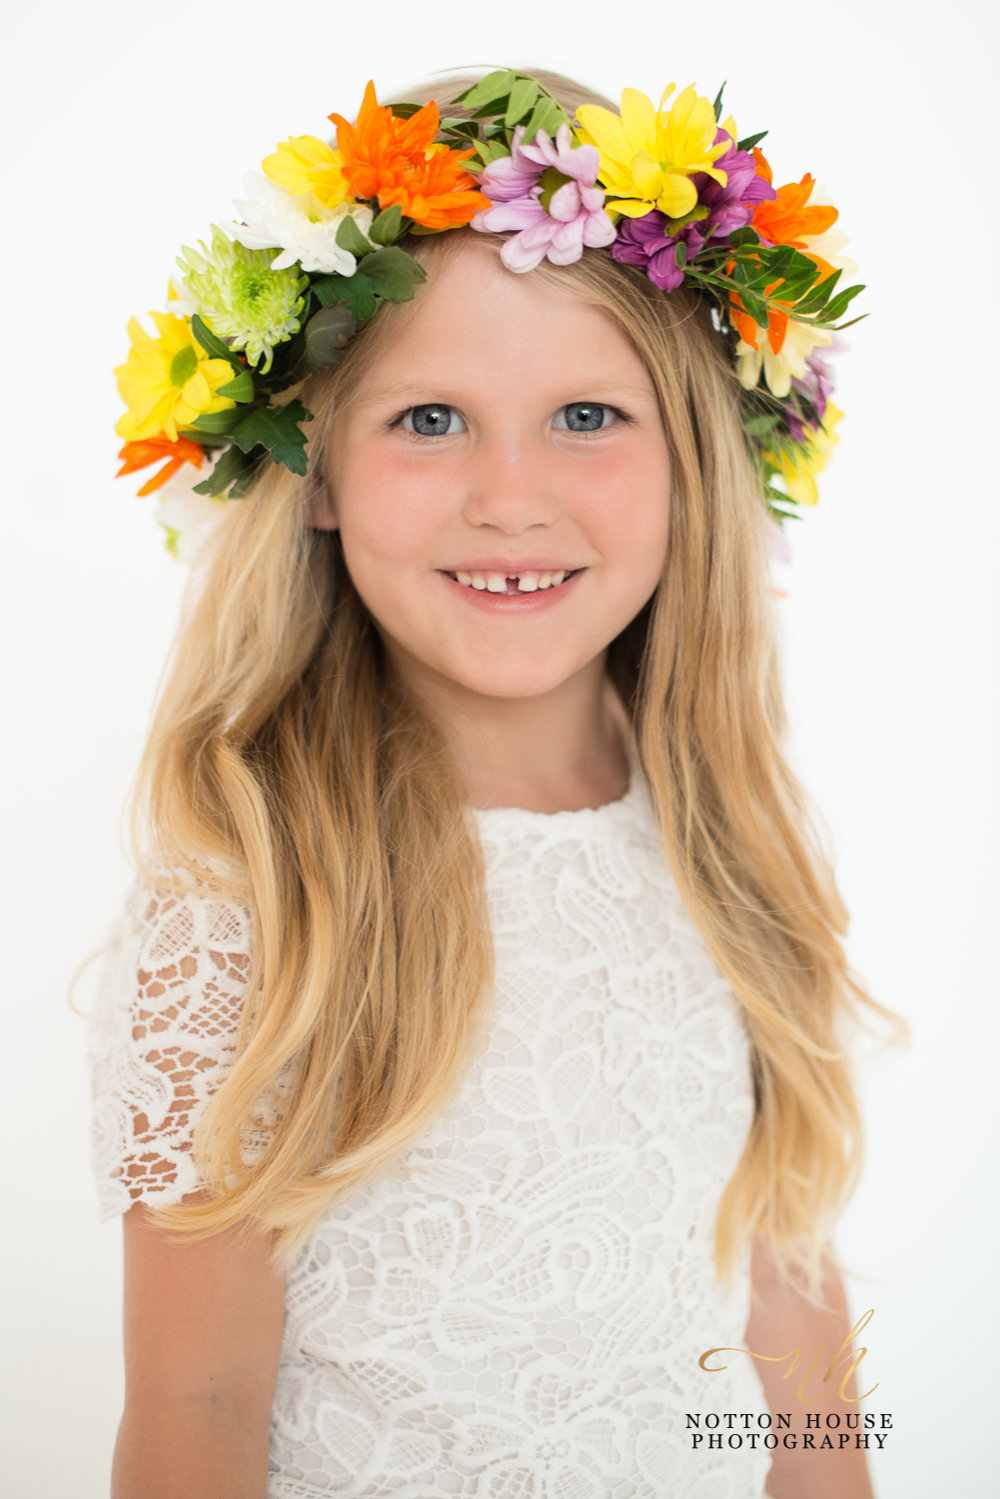 How to add flower crowns to pictures choice image flower wallpaper hd tutorial diy fresh flower crowns notton house photography how to make flower crown diy portrait wedding izmirmasajfo